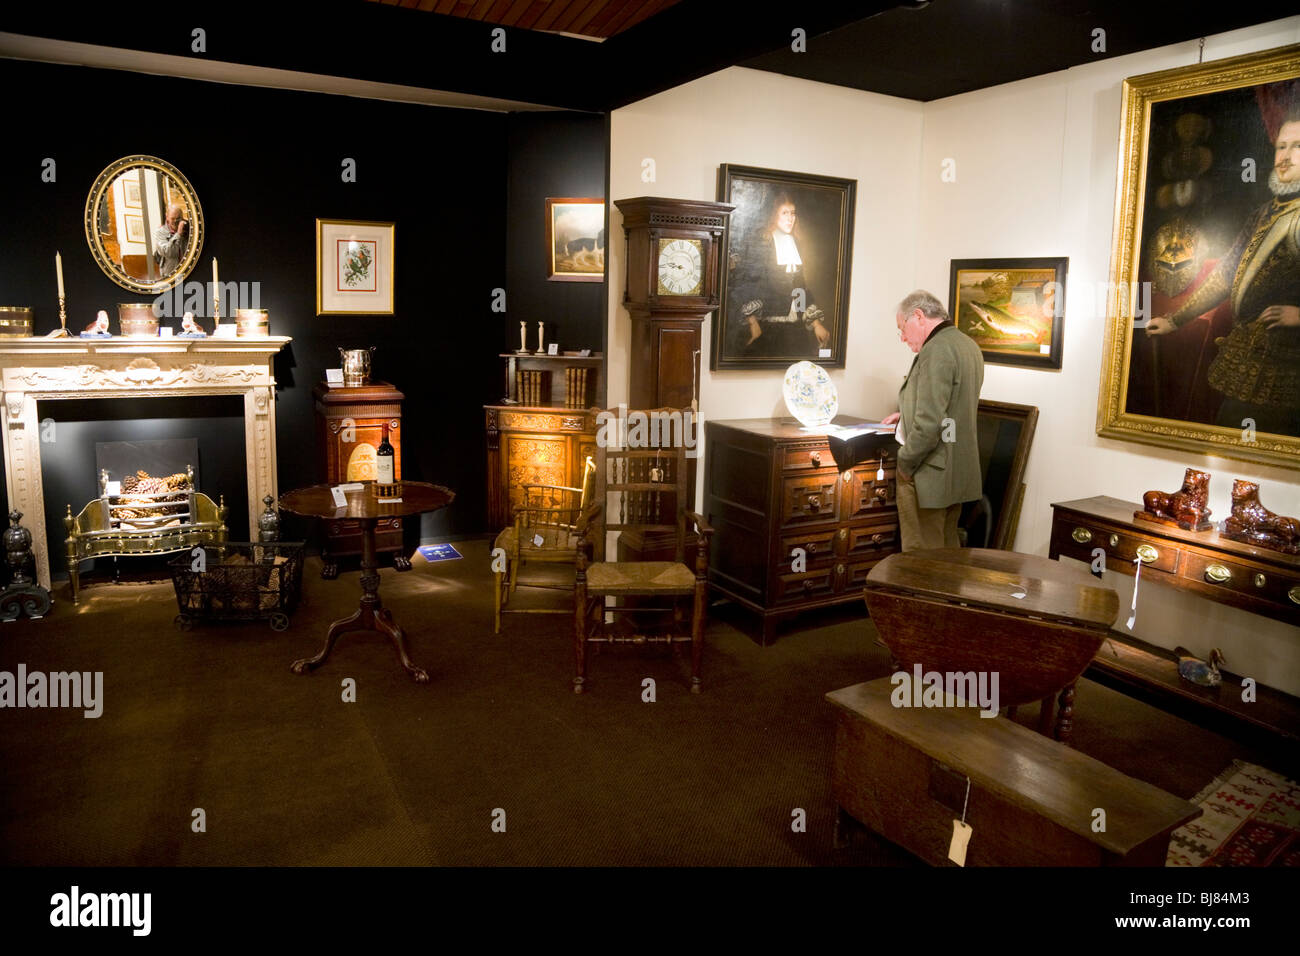 Exhibitor / stall selling antique furniture, and paintings, at the Antiques  & Fine Arts Fair, Kensington Town Hall. London. UK - Exhibitor / Stall Selling Antique Furniture, And Paintings, At The